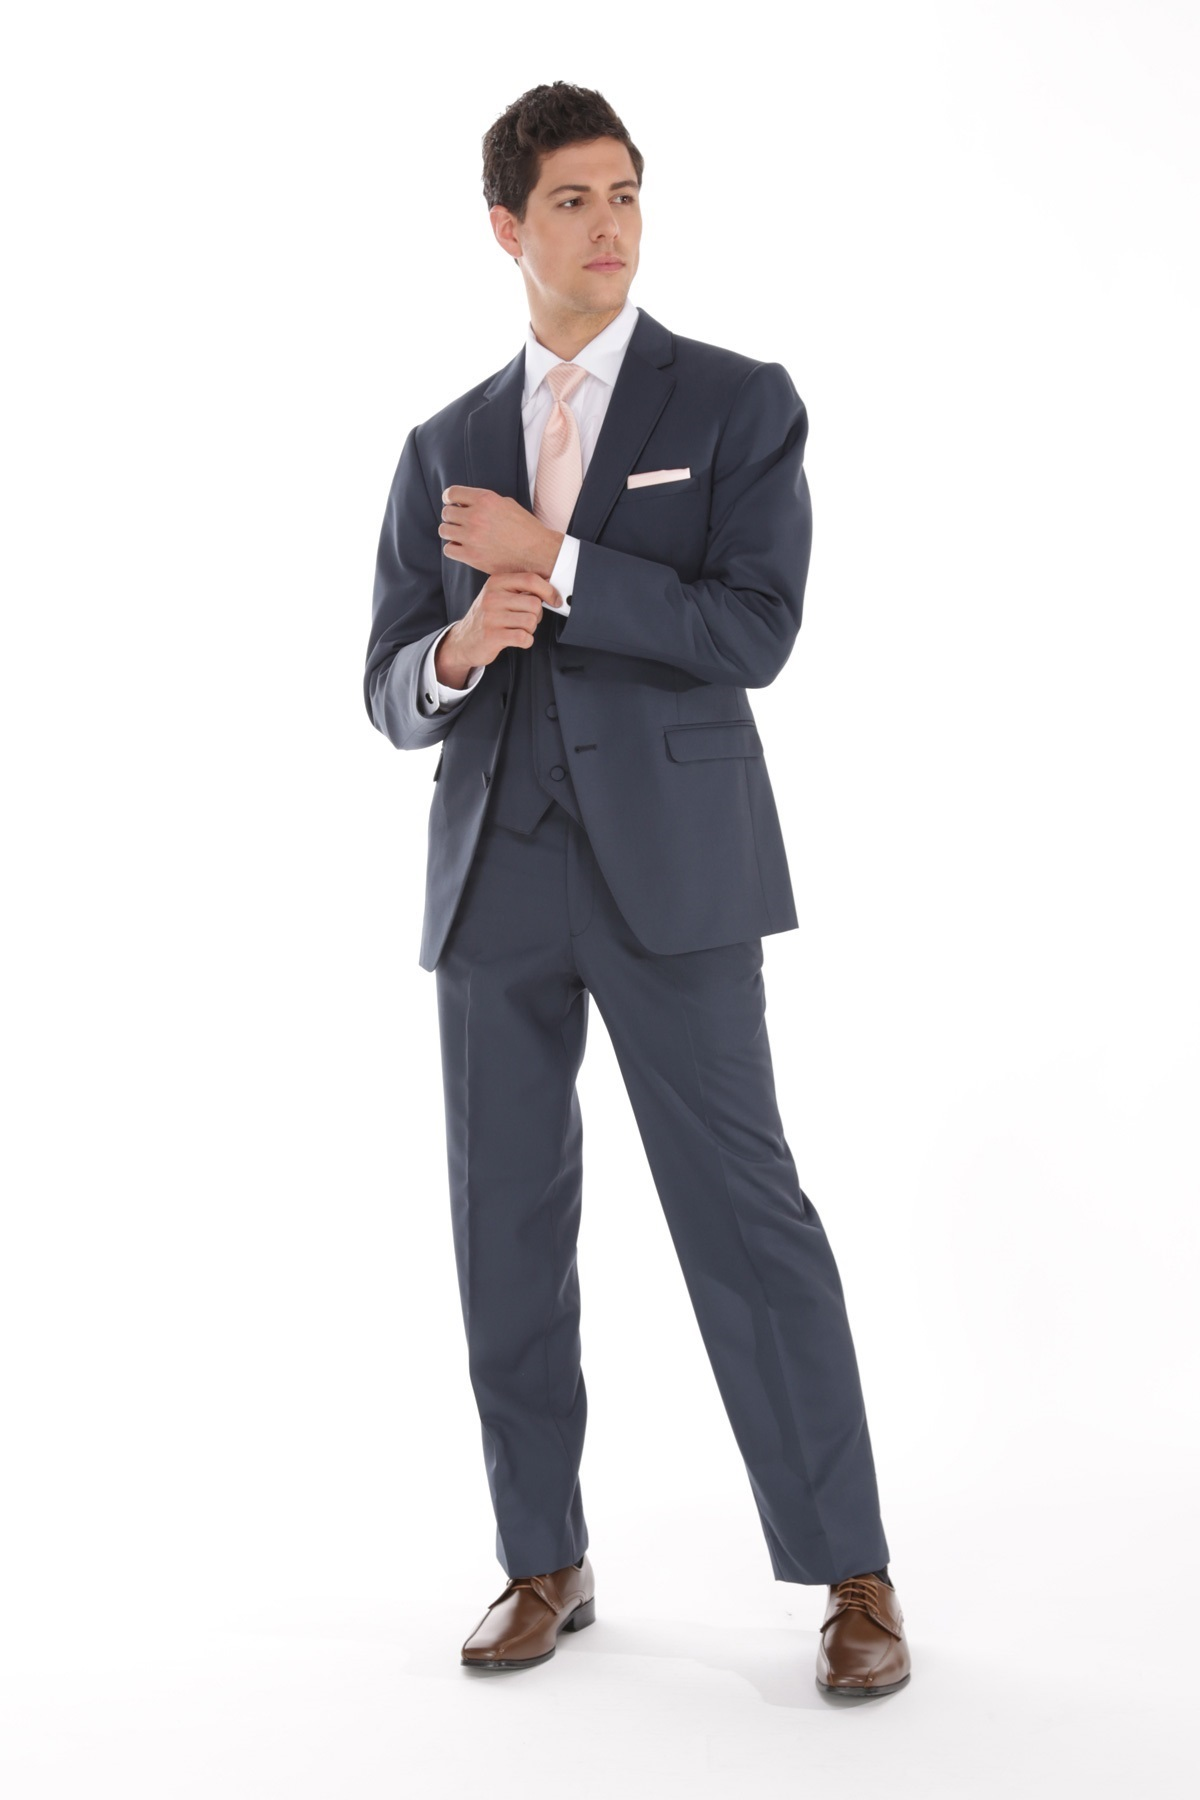 MFWtux.com - Slate Blue Allure Men Wedding Suit